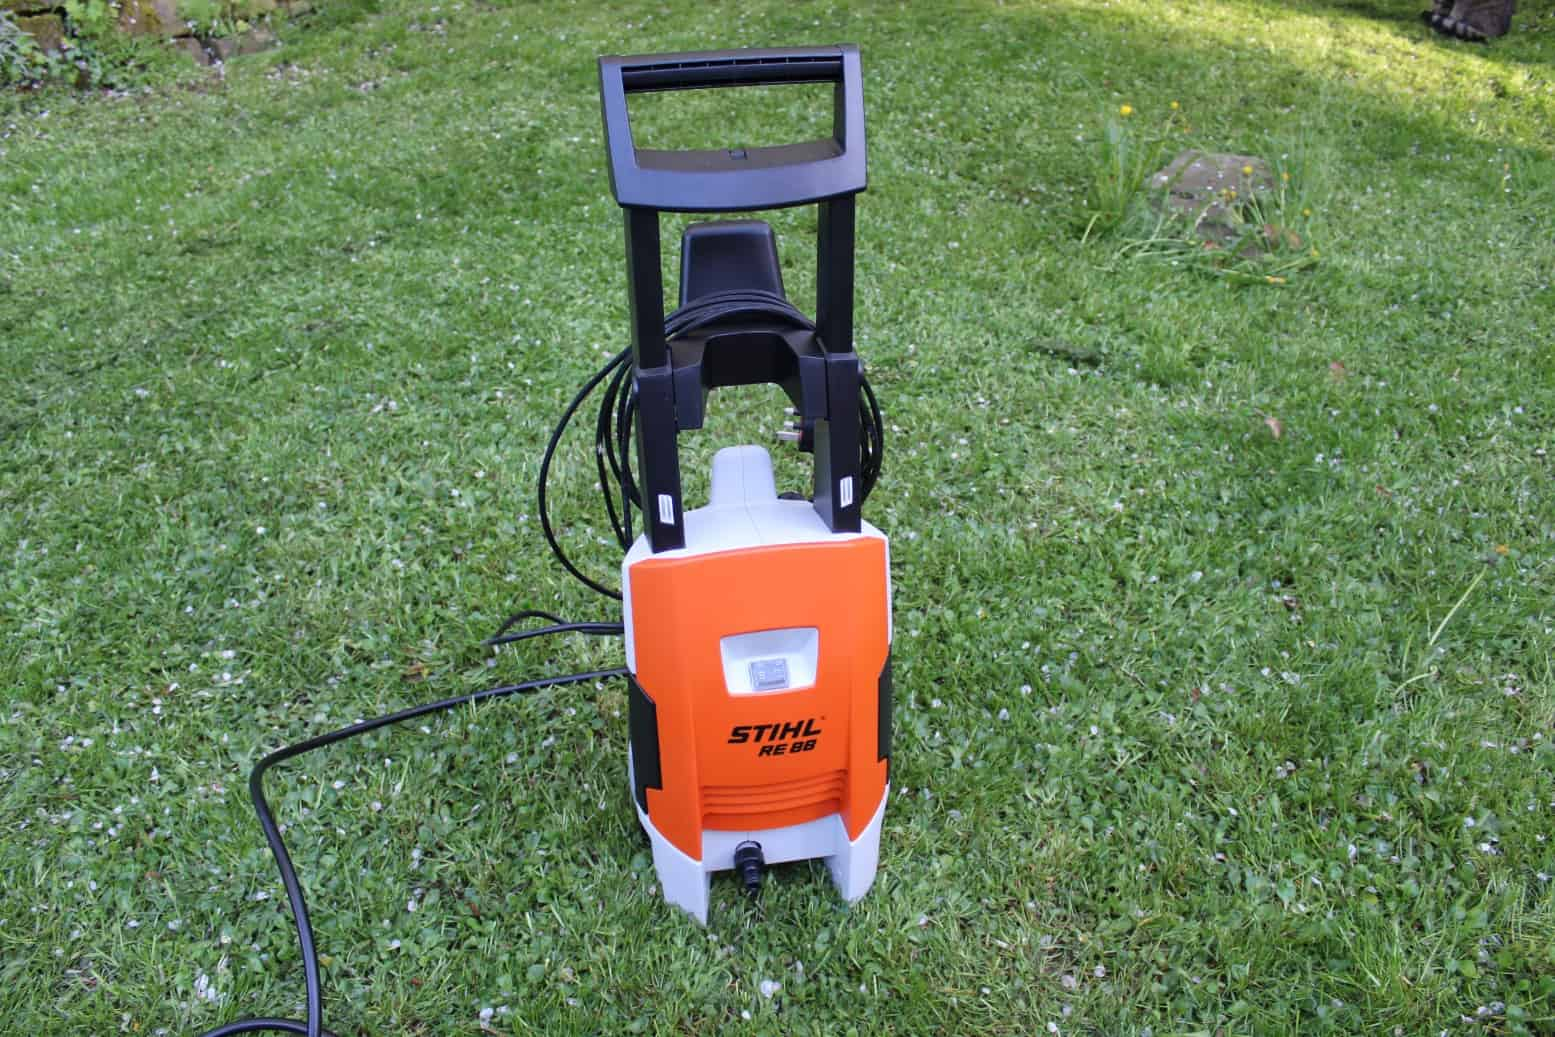 Stihl Pressure Washer Review – RE 88